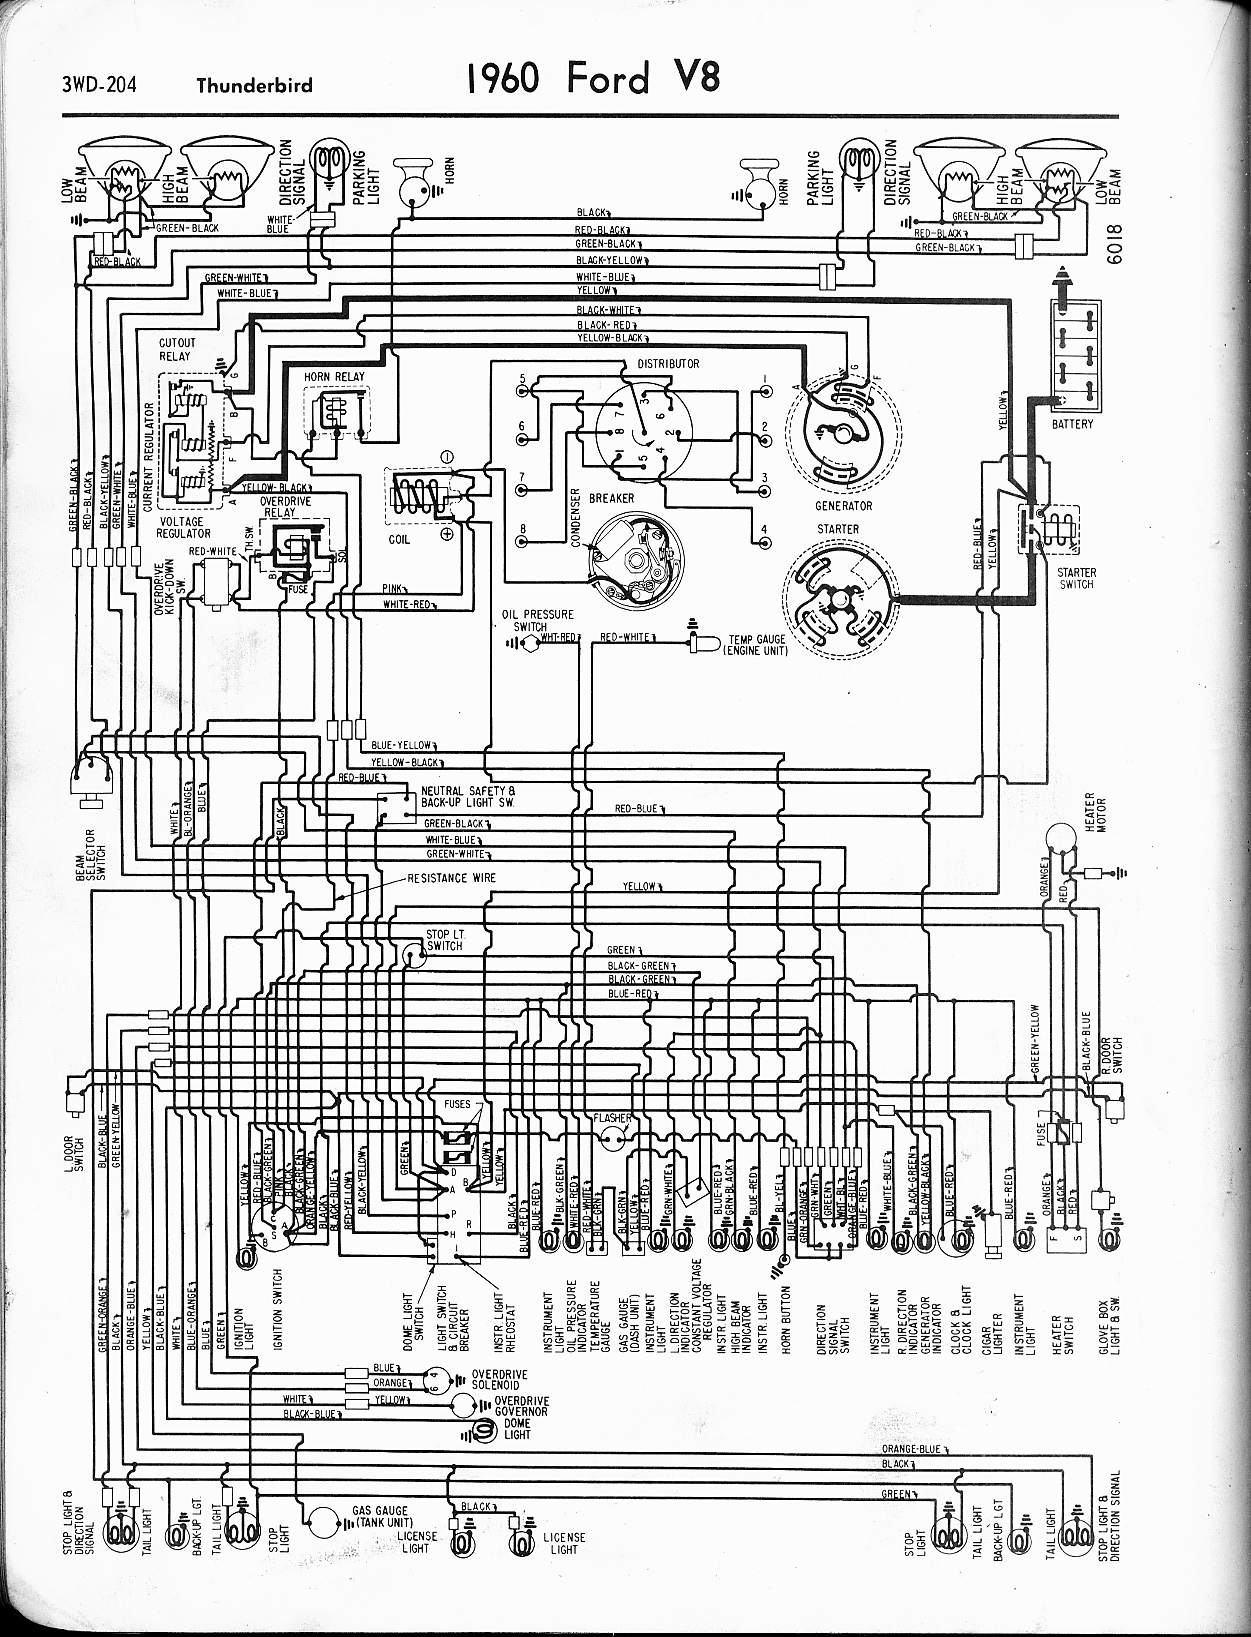 hight resolution of 1983 ford ltd crown victoria engine diagram wiring diagram meta 1983 ford ltd crown victoria engine diagram